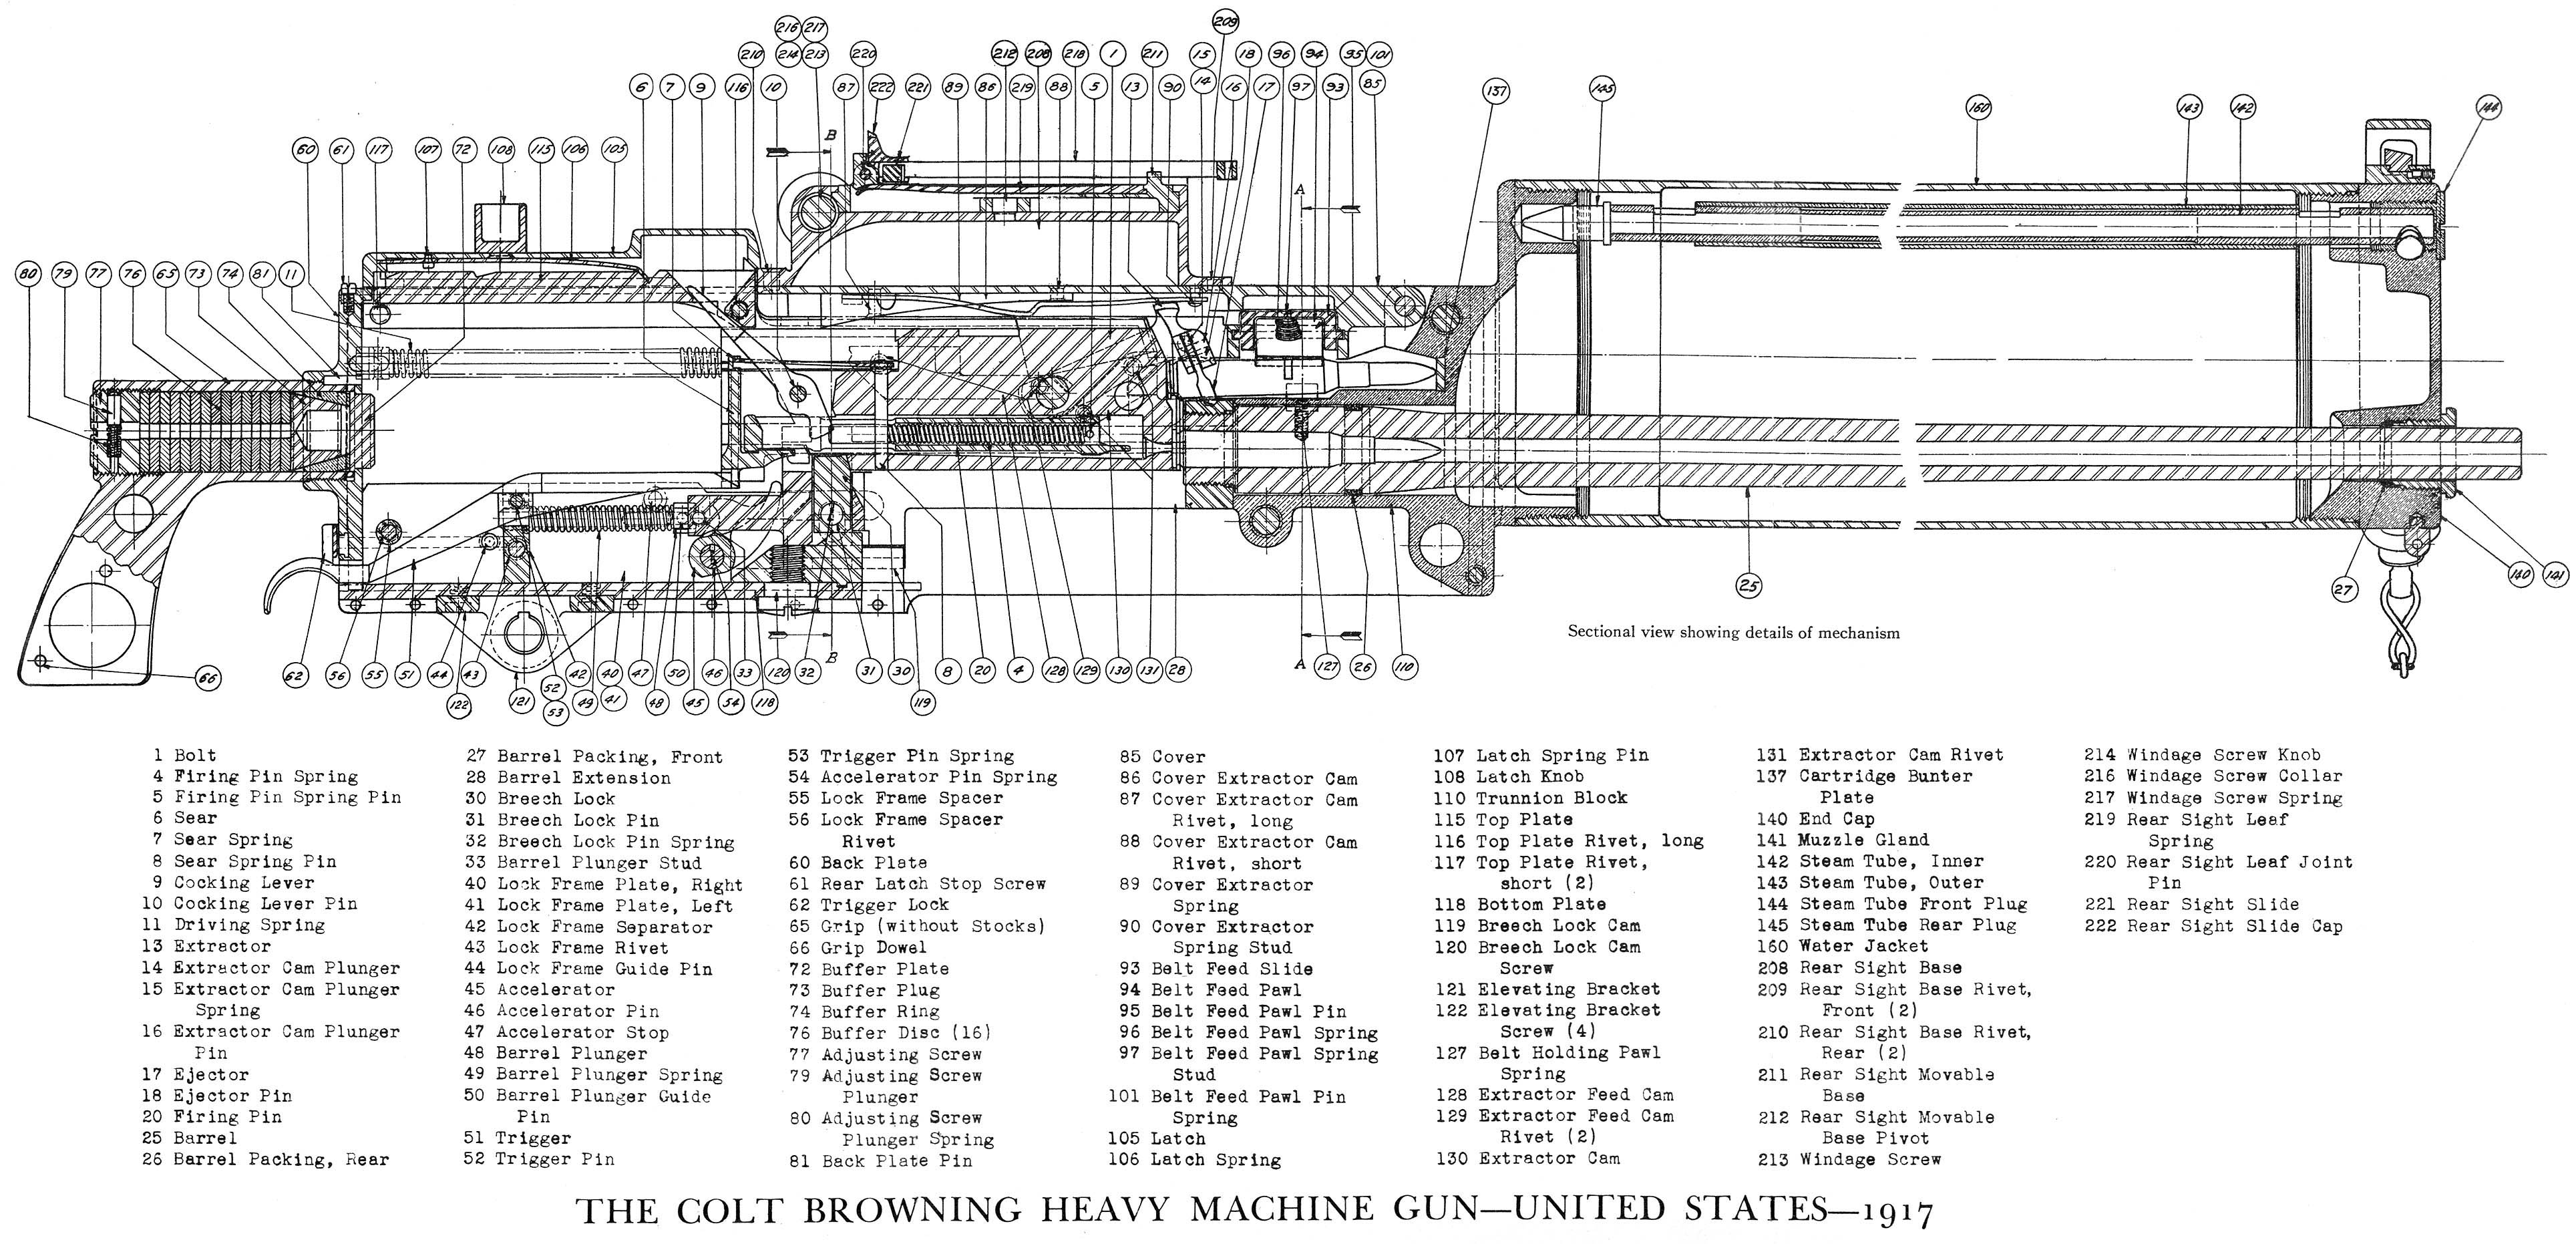 M Colt Browning Heavy Machine Gun Computer Wallpapers